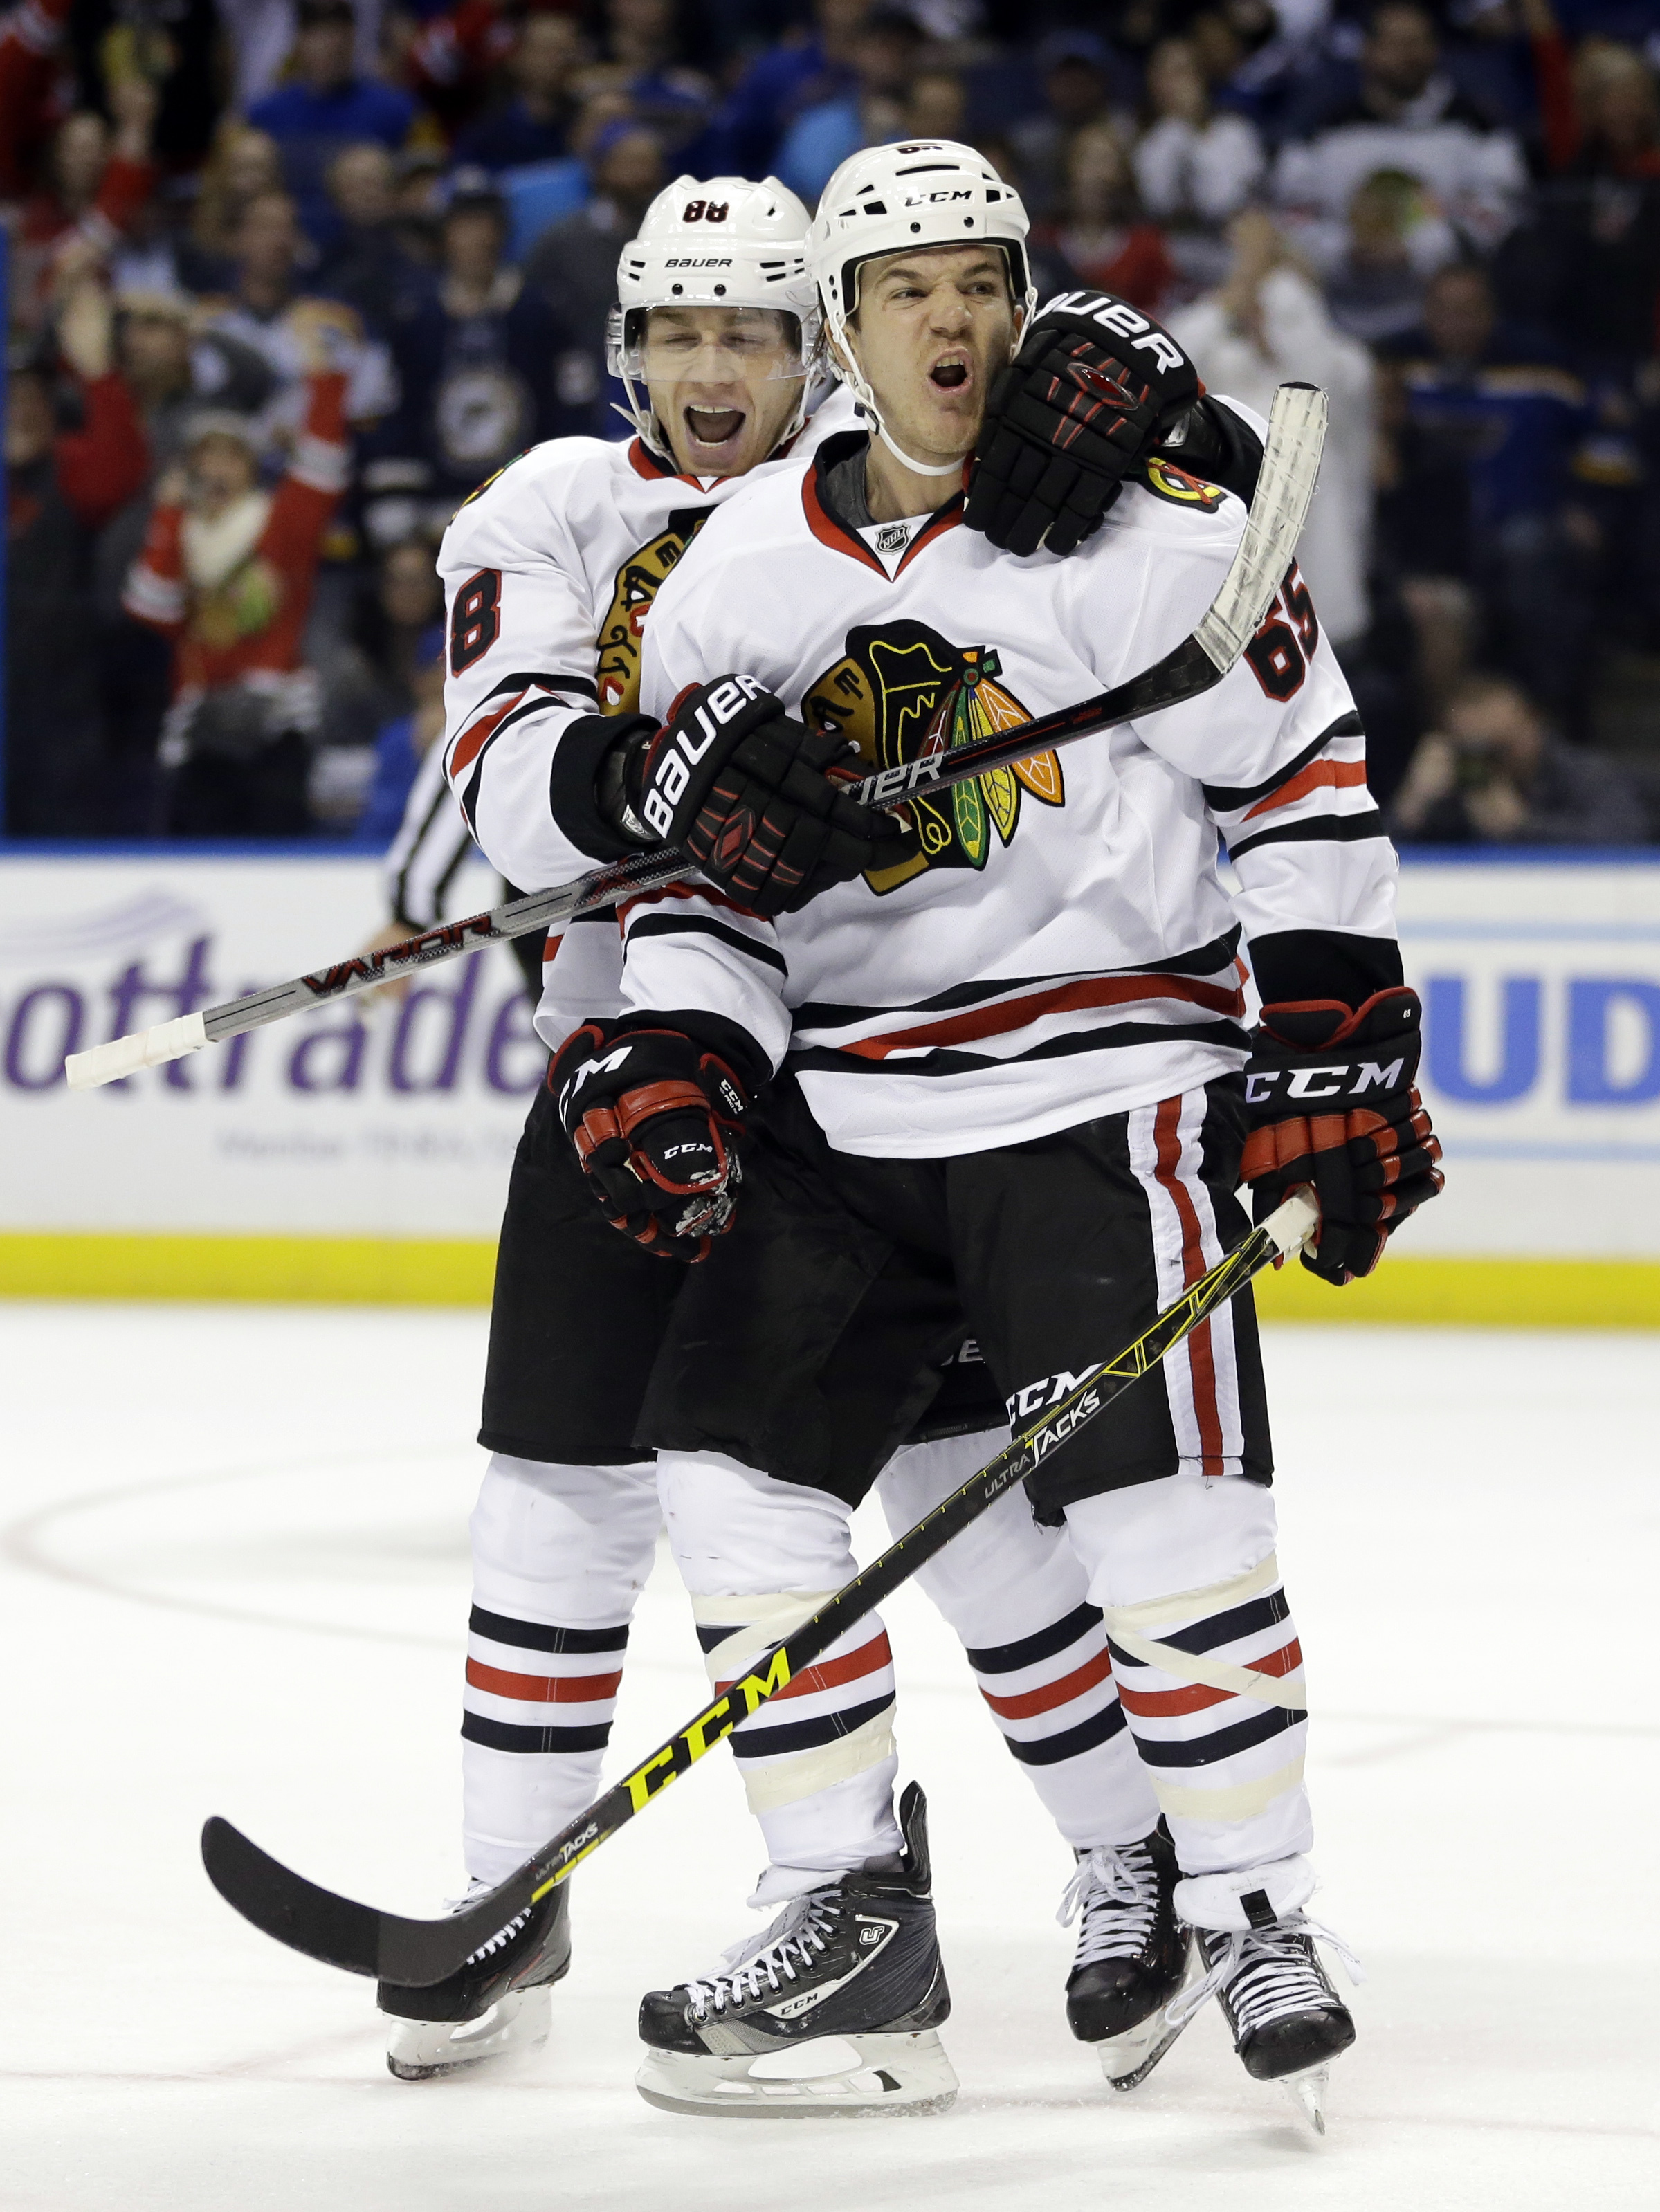 Chicago Blackhawks' Andrew Shaw, right, is congratulated by teammate Patrick Kane after scoring during the third period in Game 2 of an NHL hockey first-round Stanley Cup playoff series against the St. Louis Blues Friday, April 15, 2016, in St. Louis. (AP